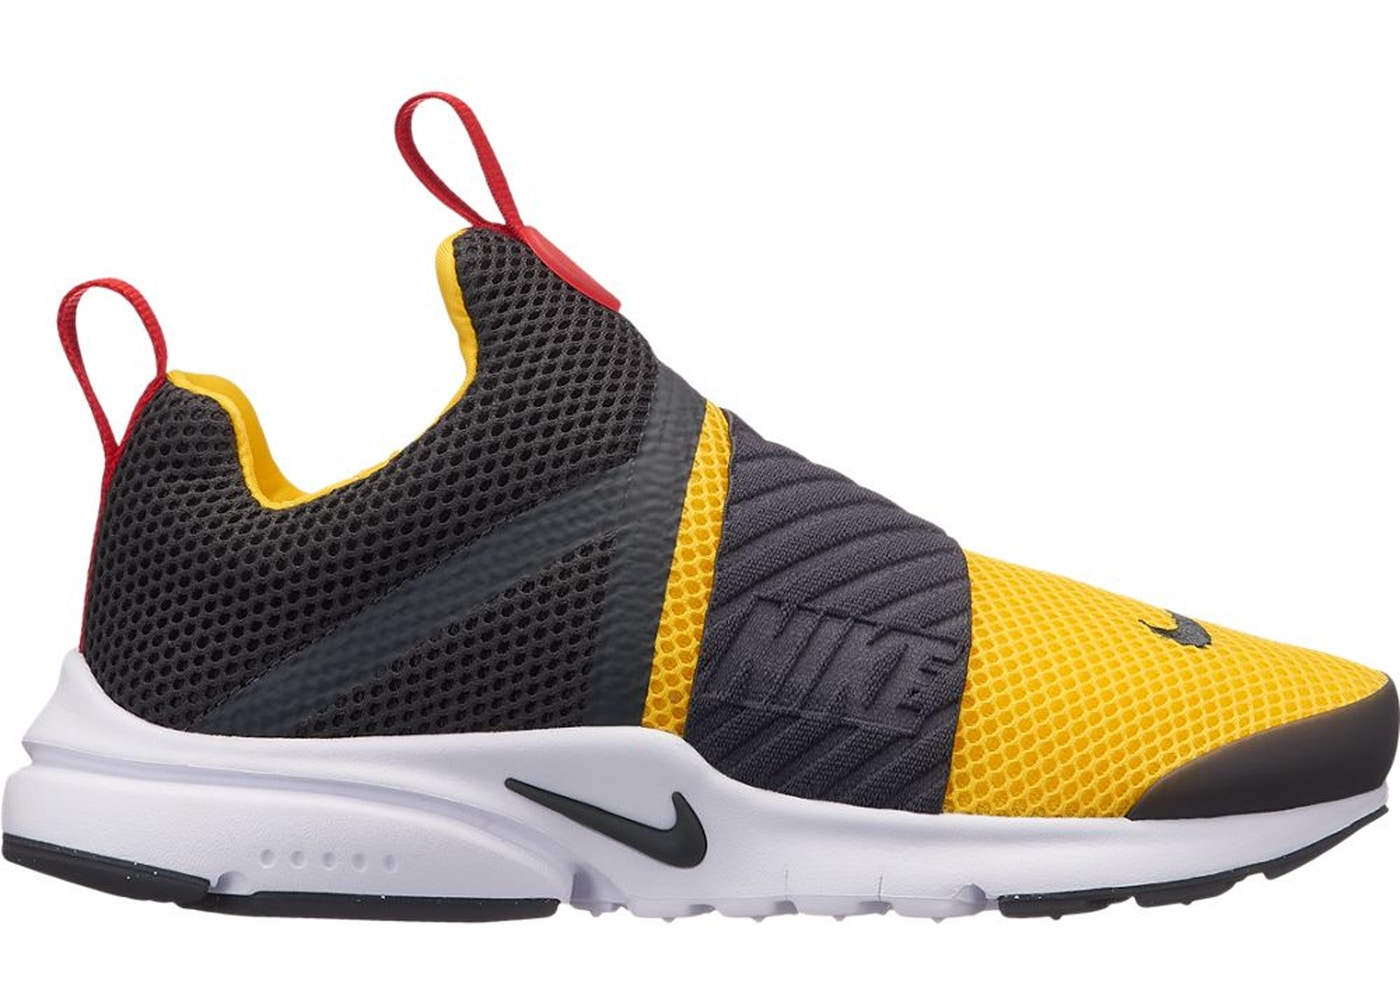 df0b48939e77 Nike Presto Extreme Anthracite Tour Yellow (GS) - 870020-005